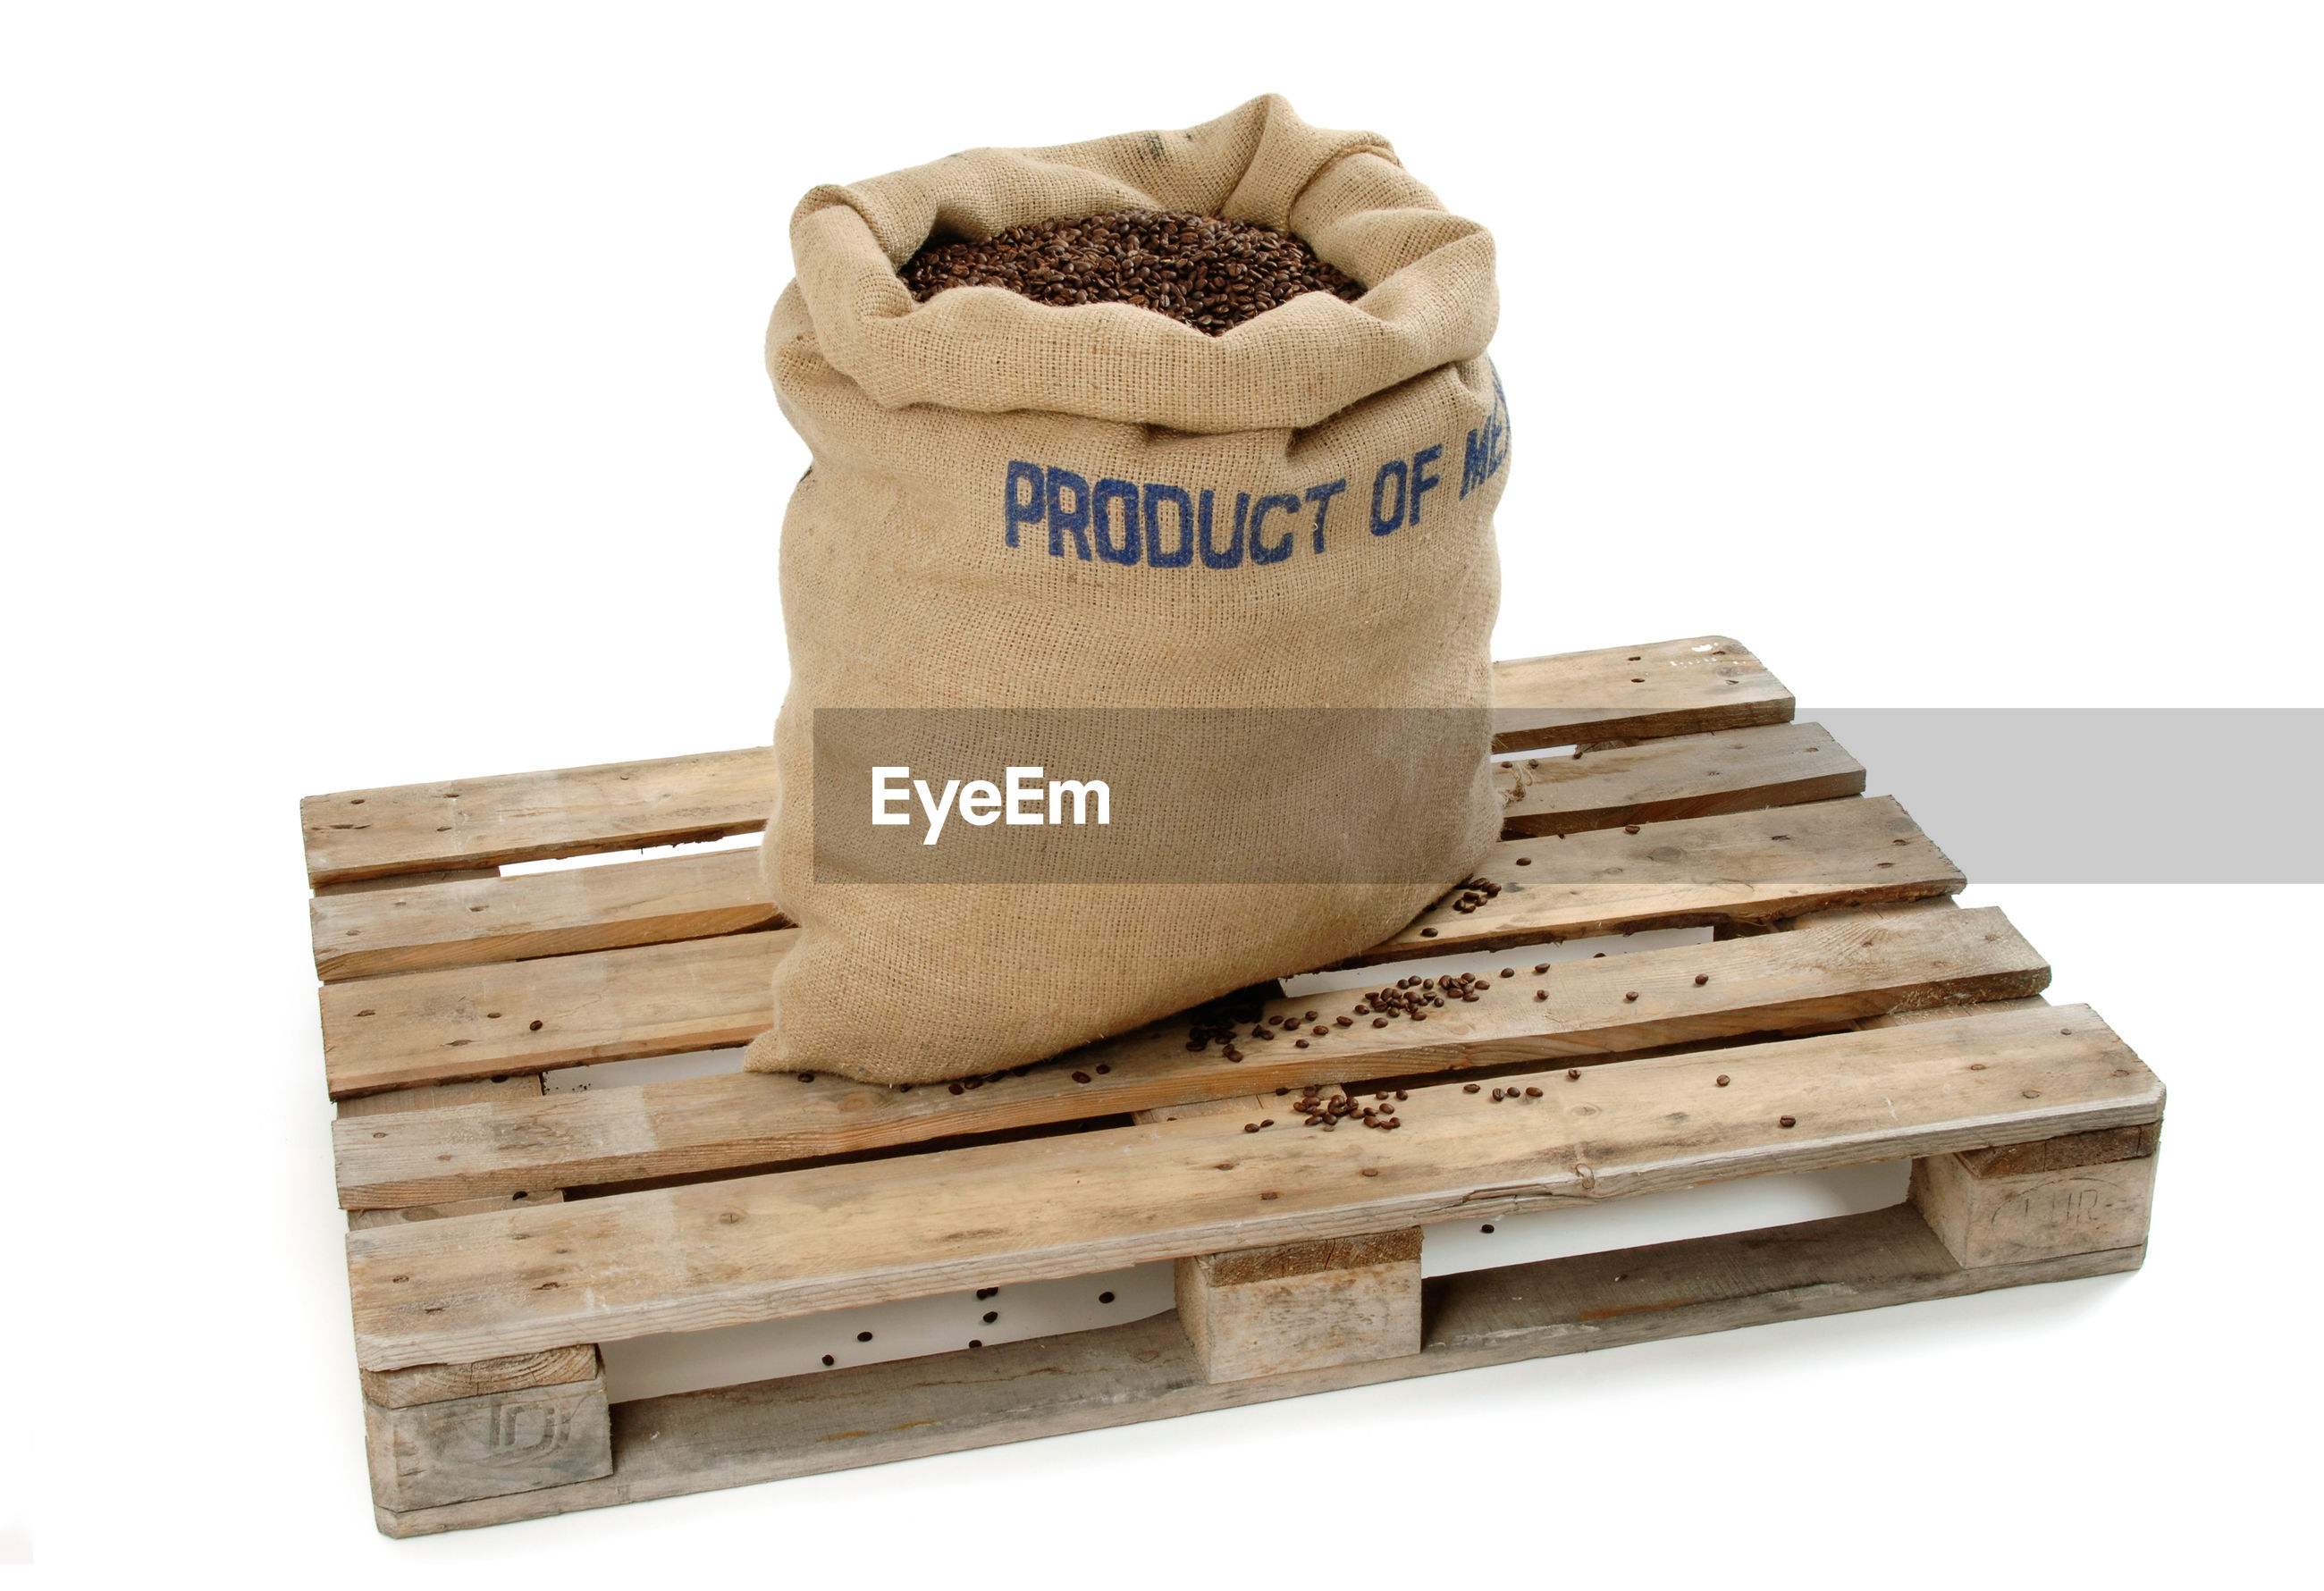 Coffee beans in sack on wood over white background